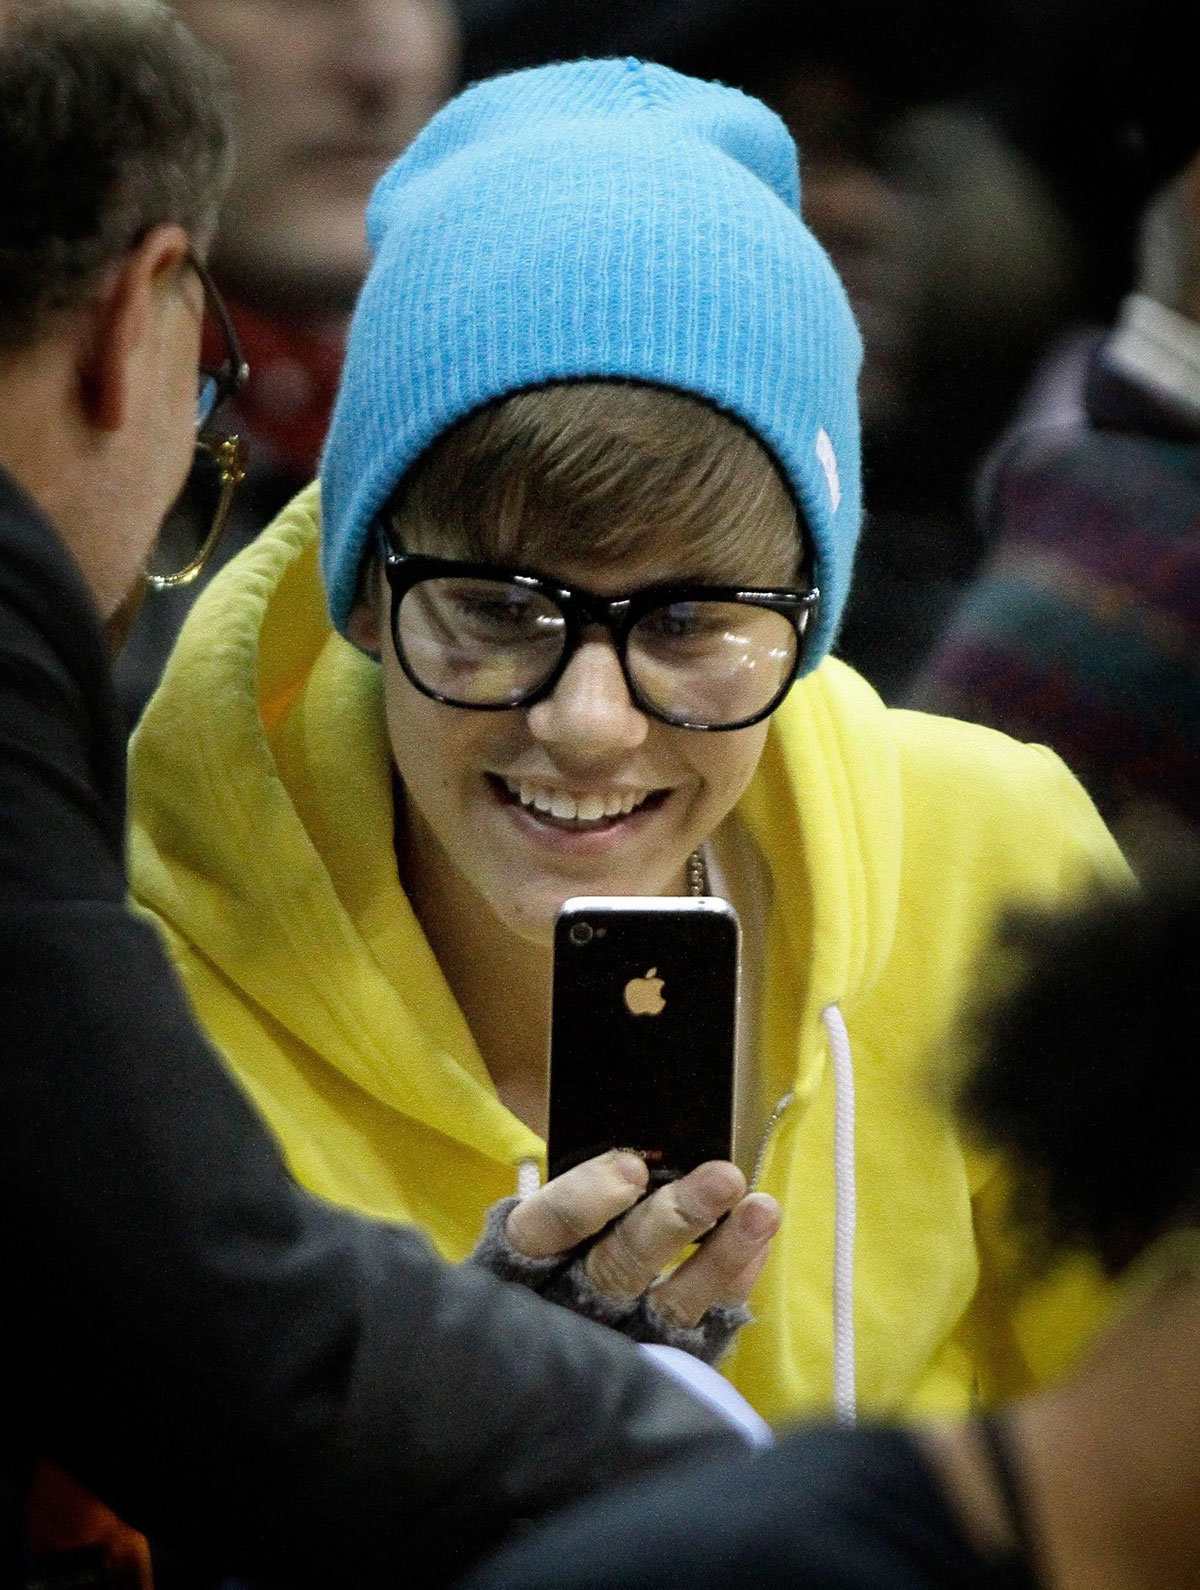 Justin Bieber launches new Shots of Me selfie app